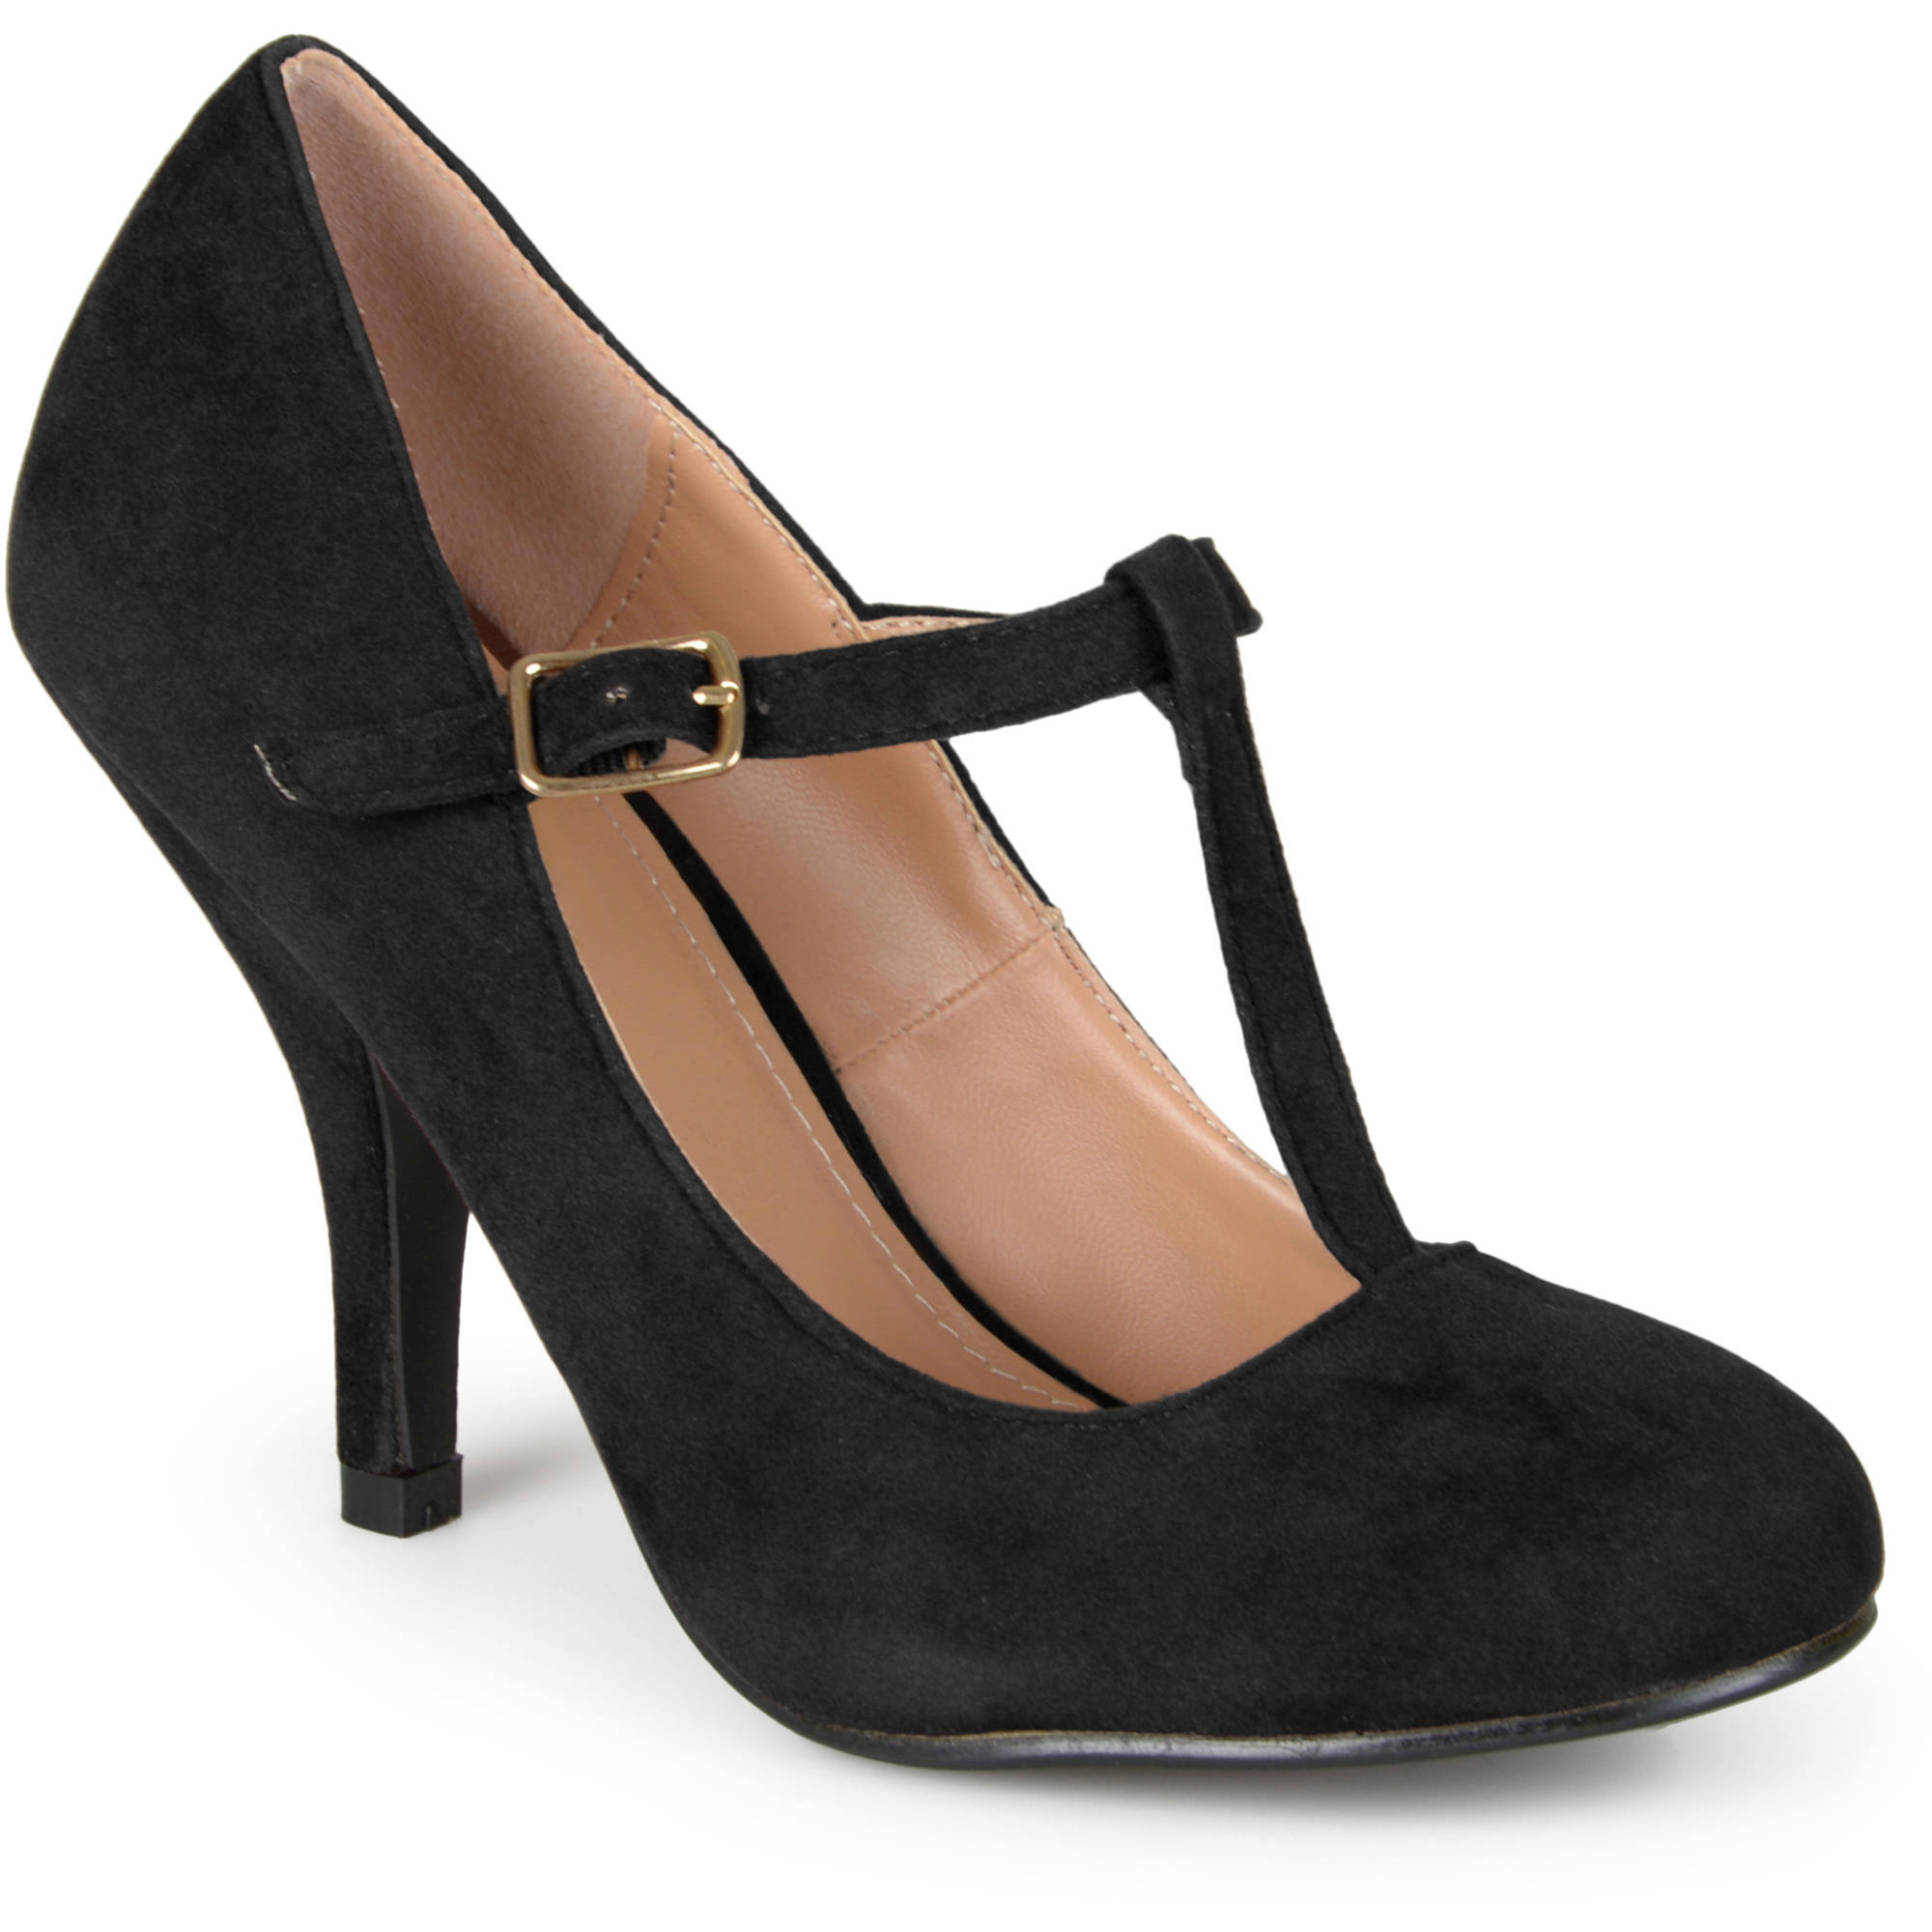 Brinley Co Womens Sueded T-strap Round Toe Pumps